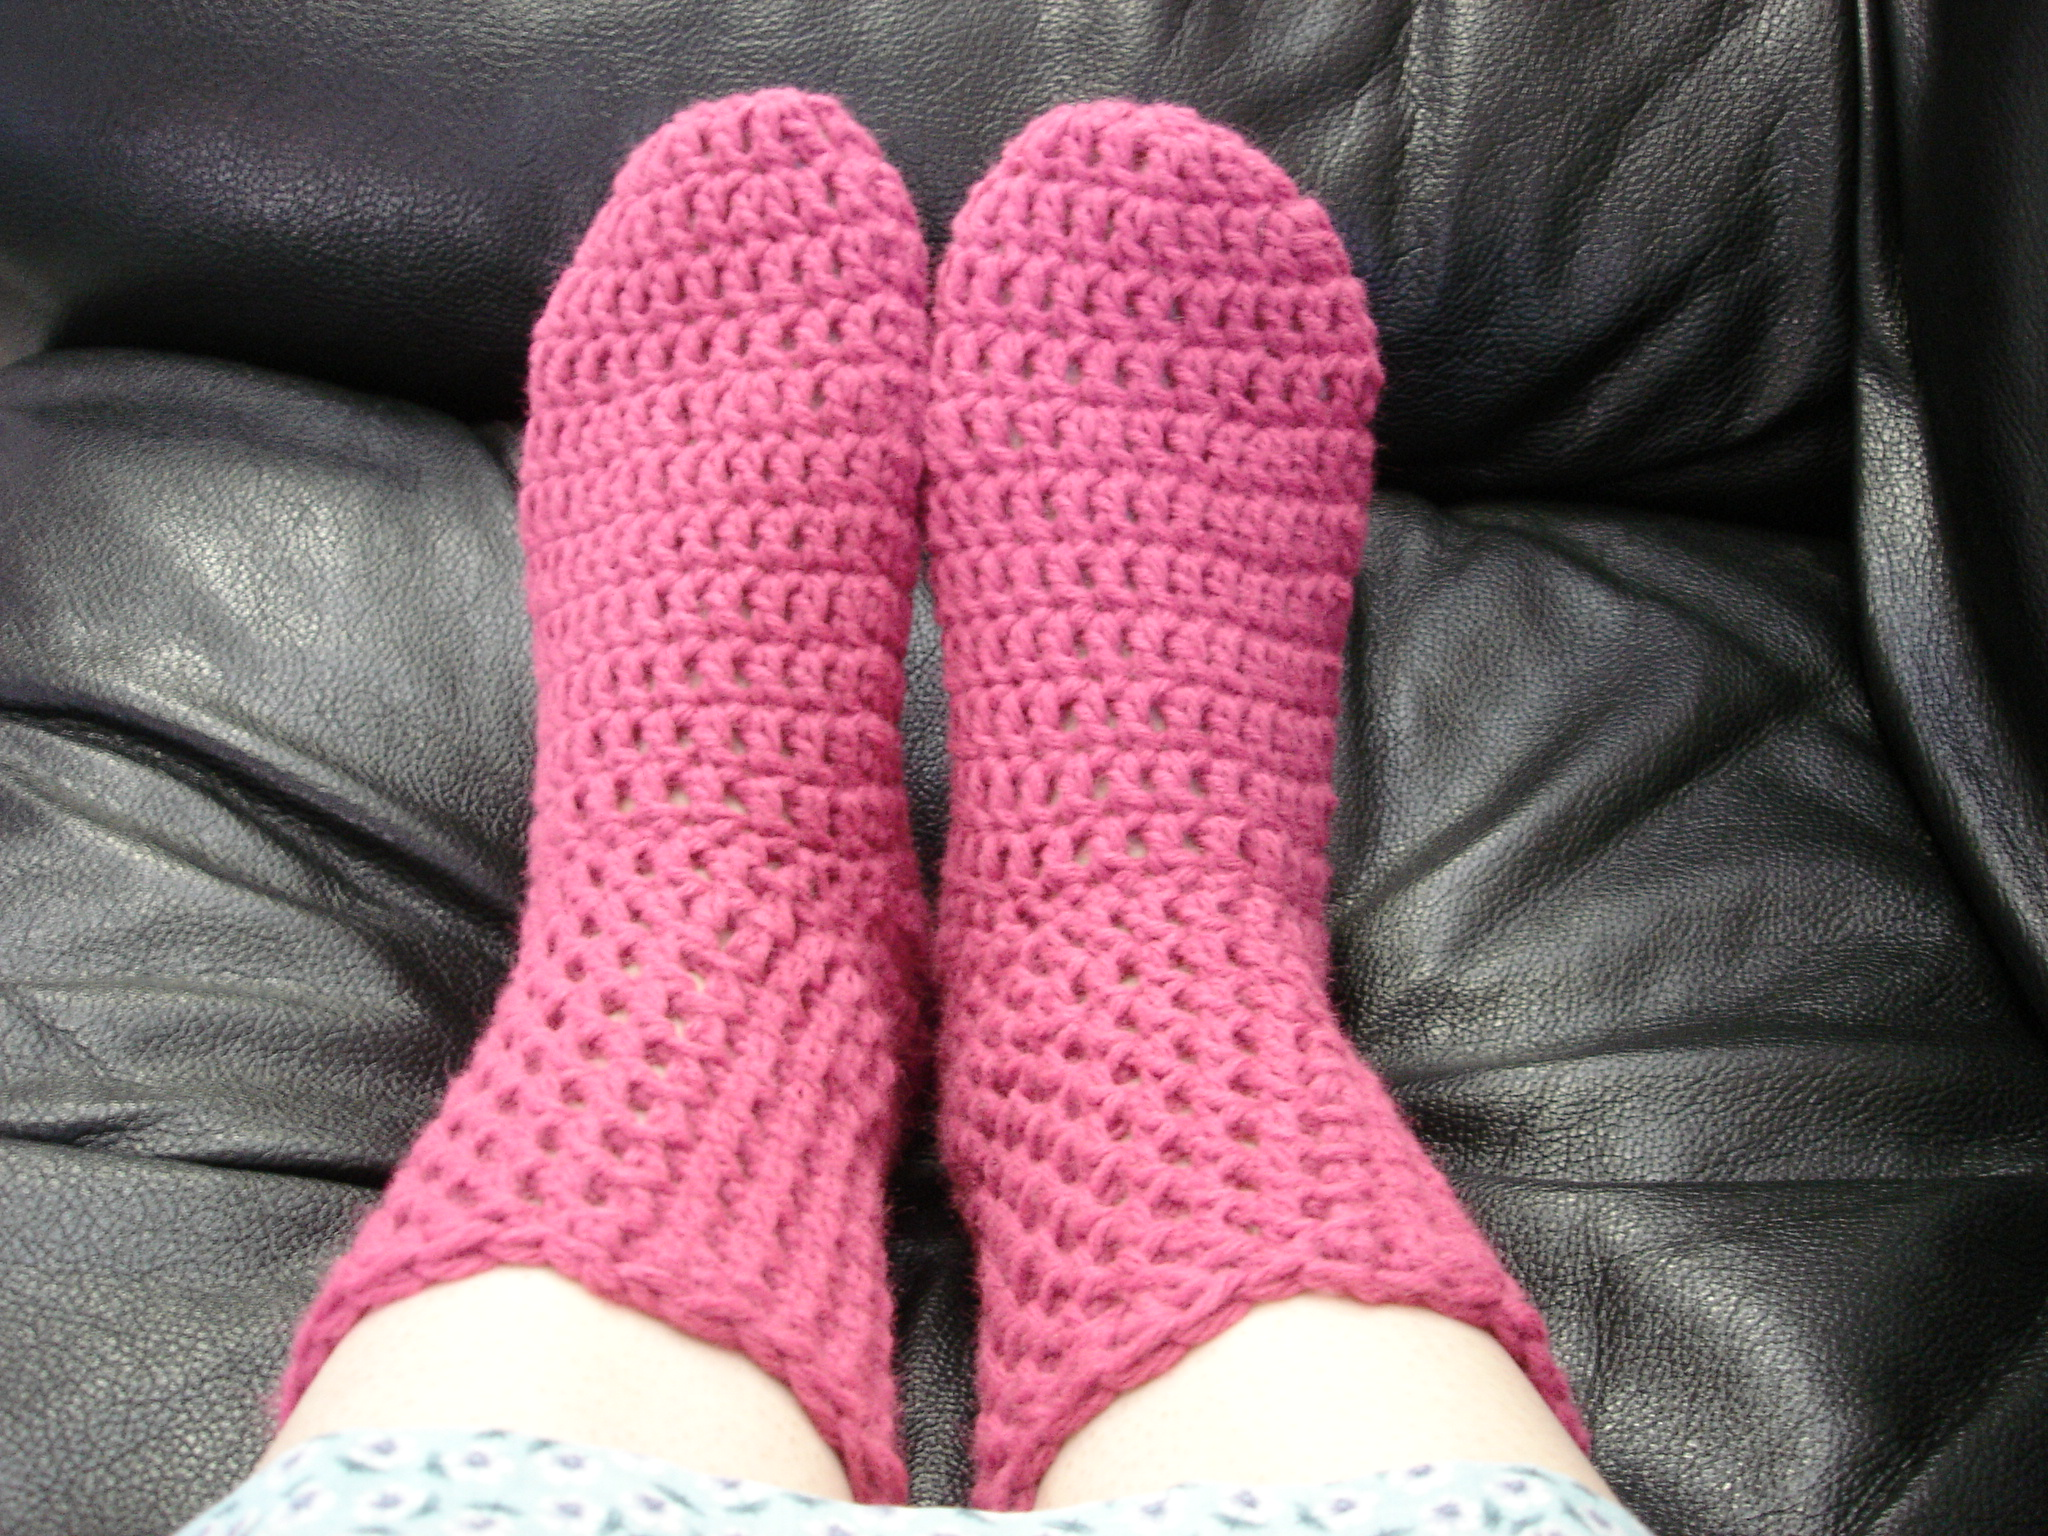 Crochet Sock Pattern merrydeals4u